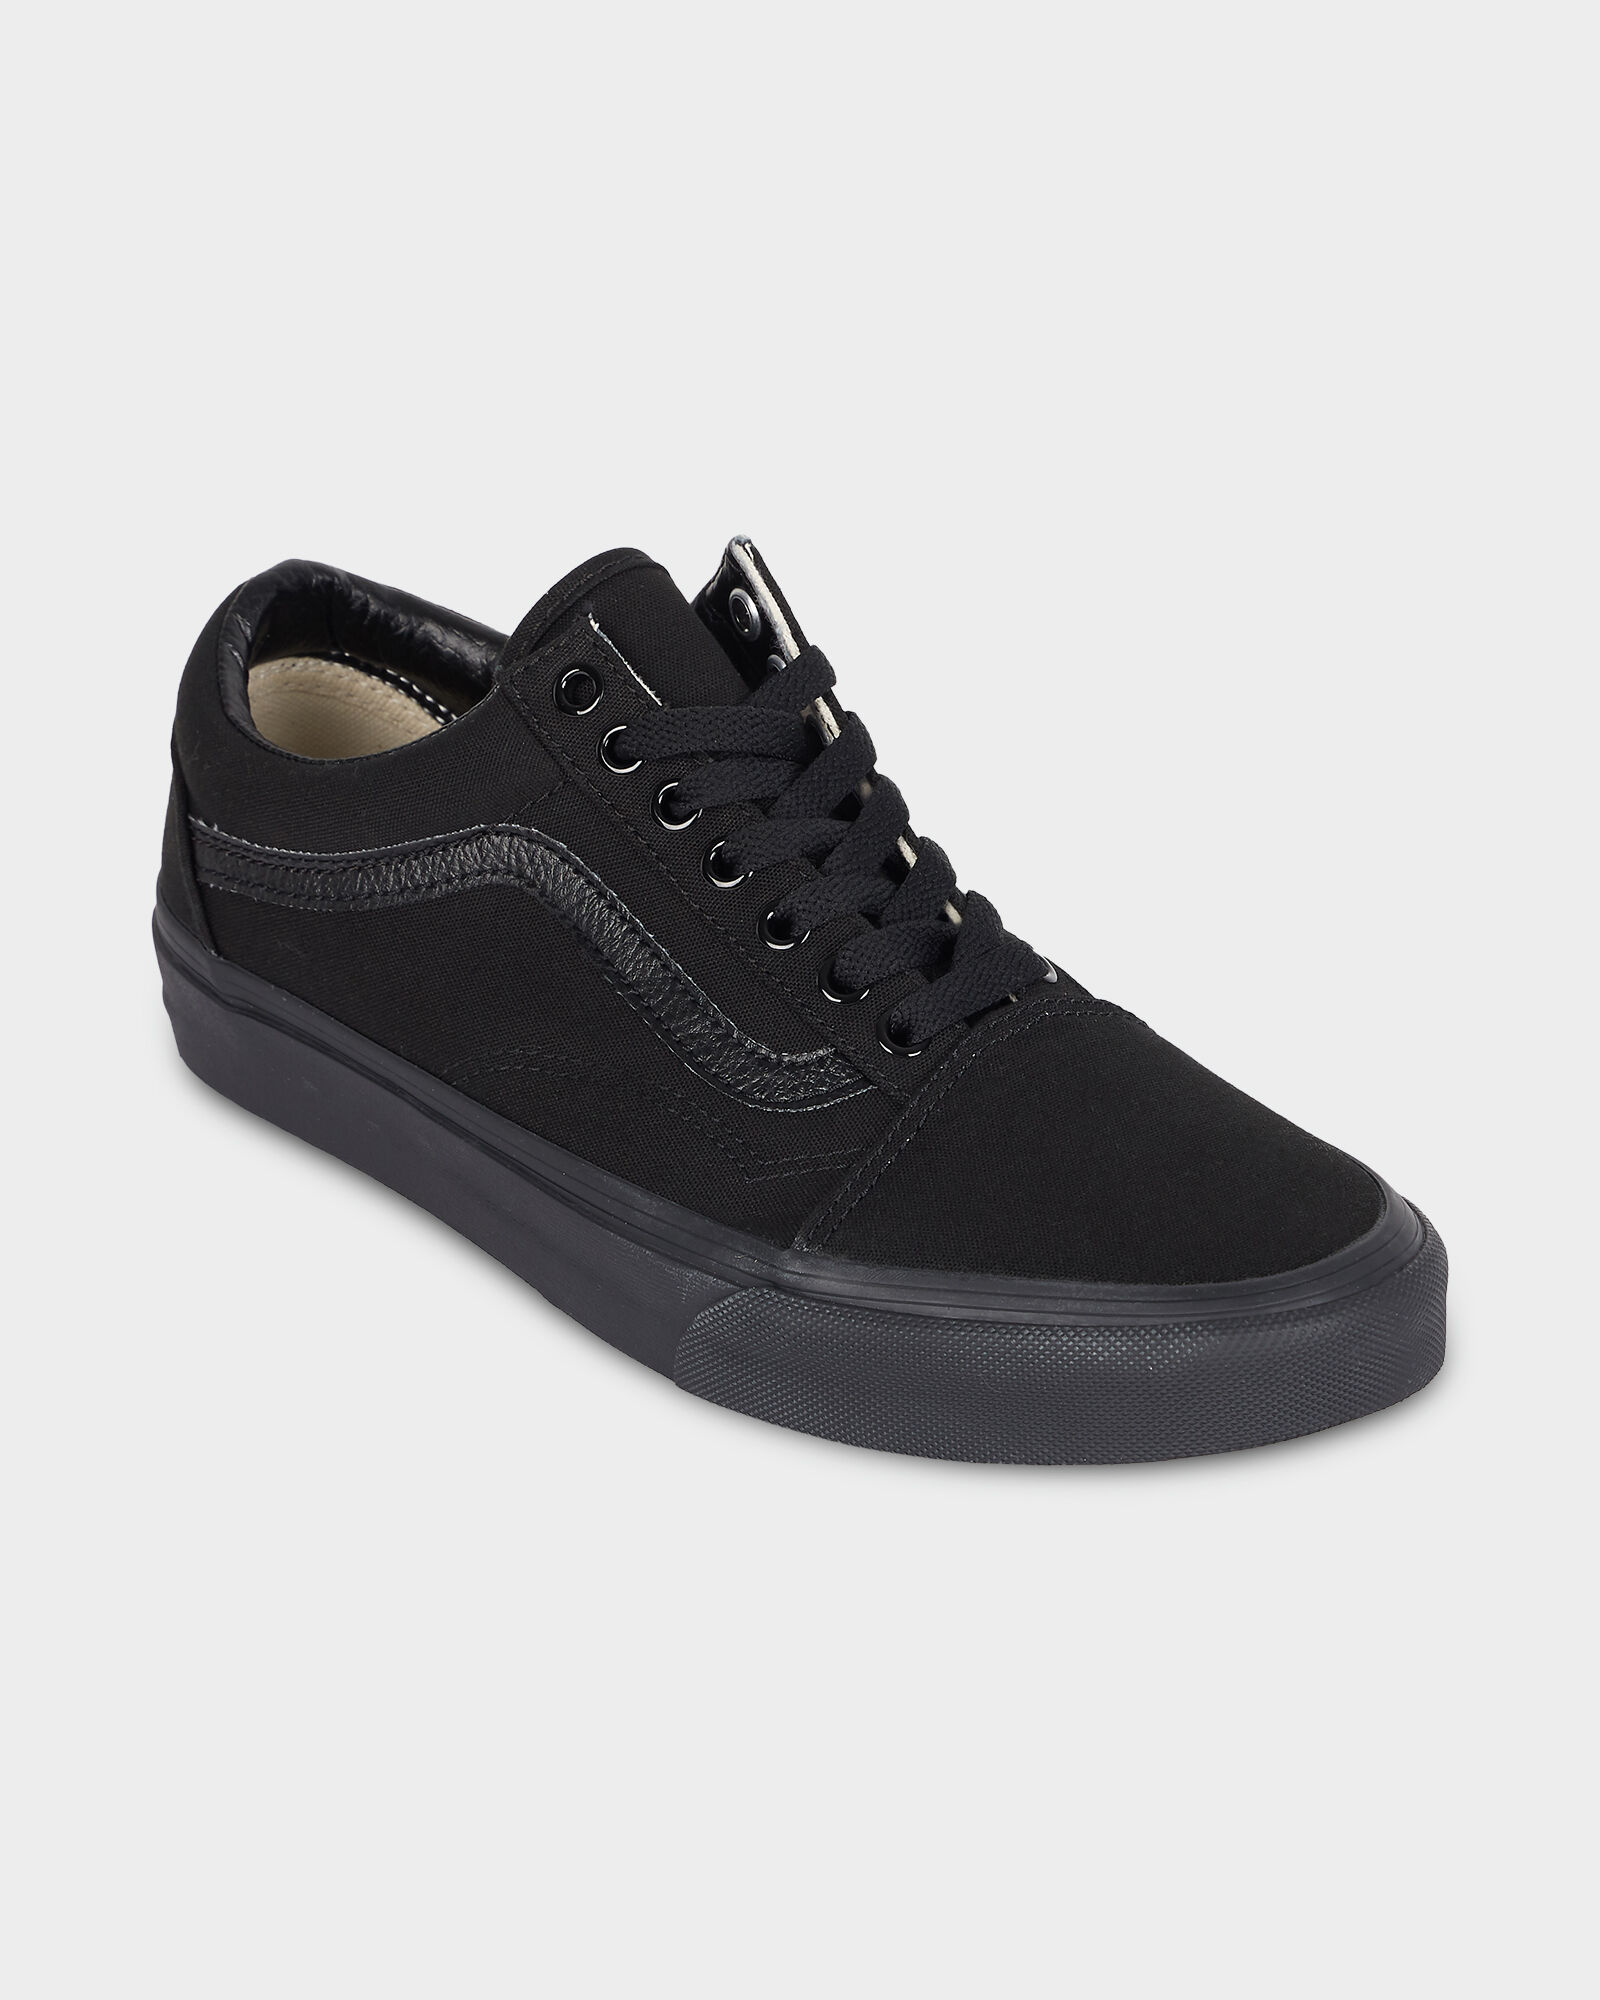 Sale OFF-61%|black and white vans nz